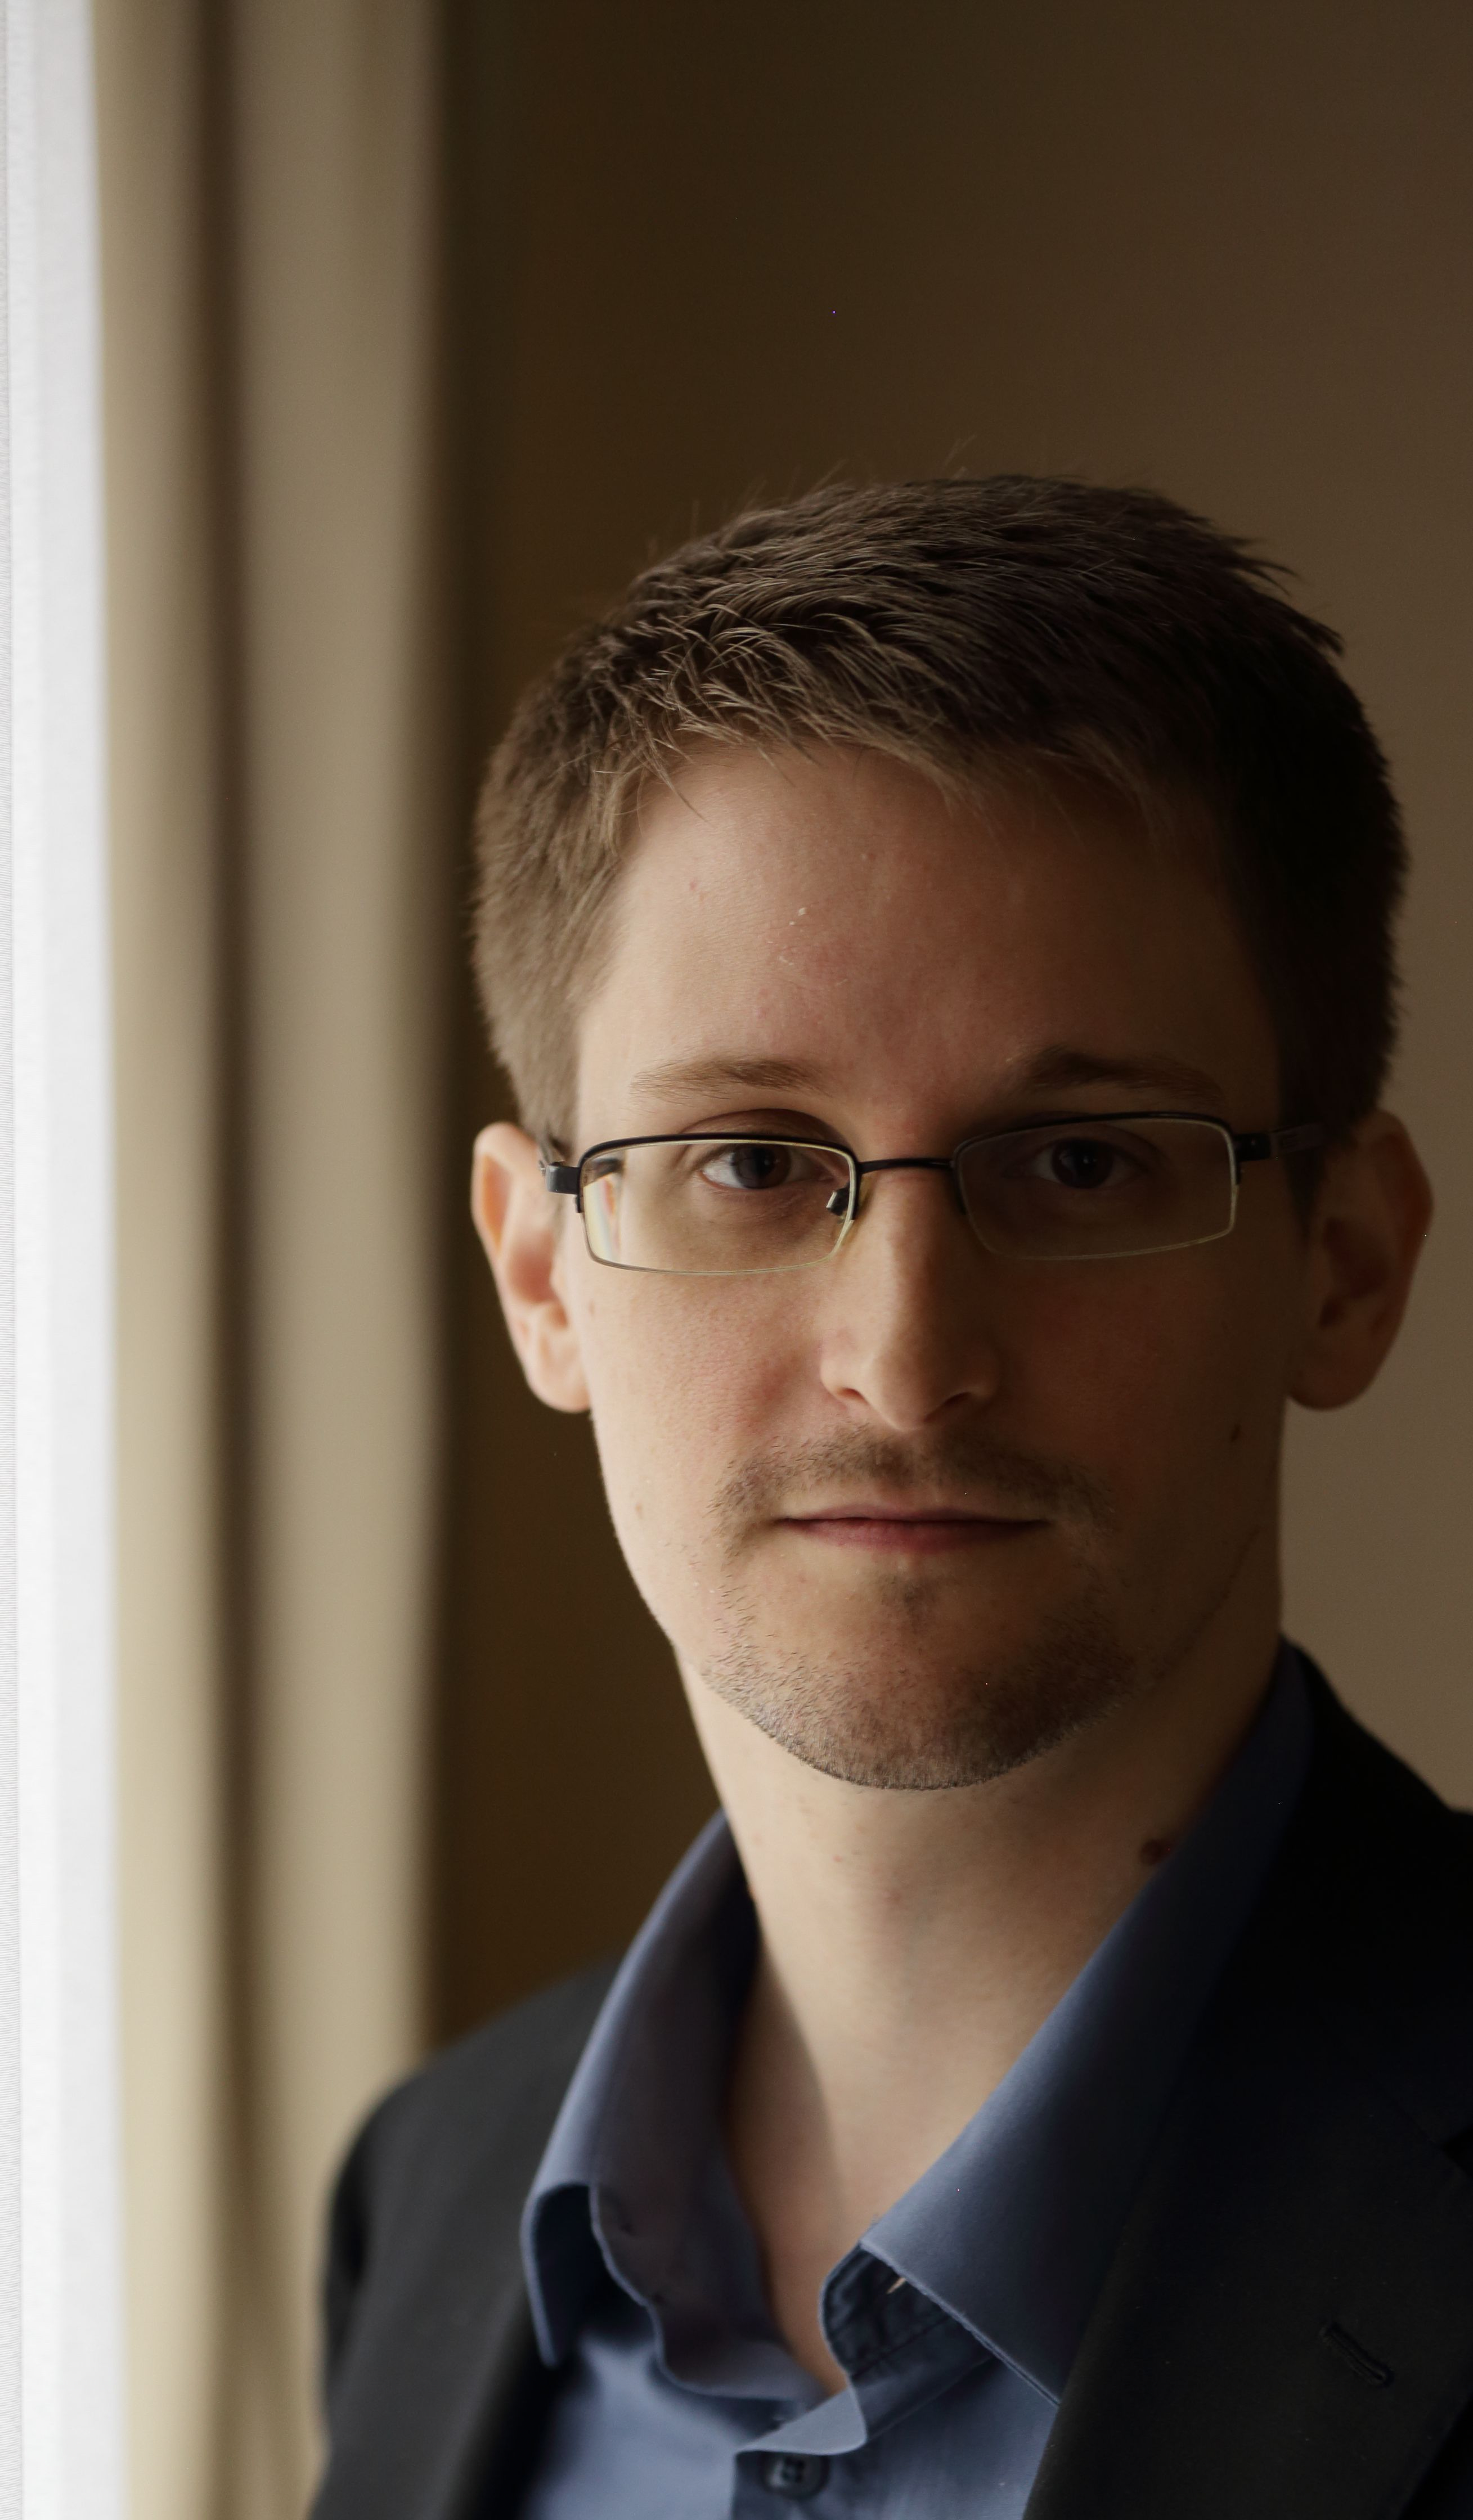 the global hunt for edward snowden essay Ethical dilemma: edward snowden the traitor or american hero edward snowden is computer professional from the united states in june 2013 he leaked classified information about the united states from the nsa (national security agency.